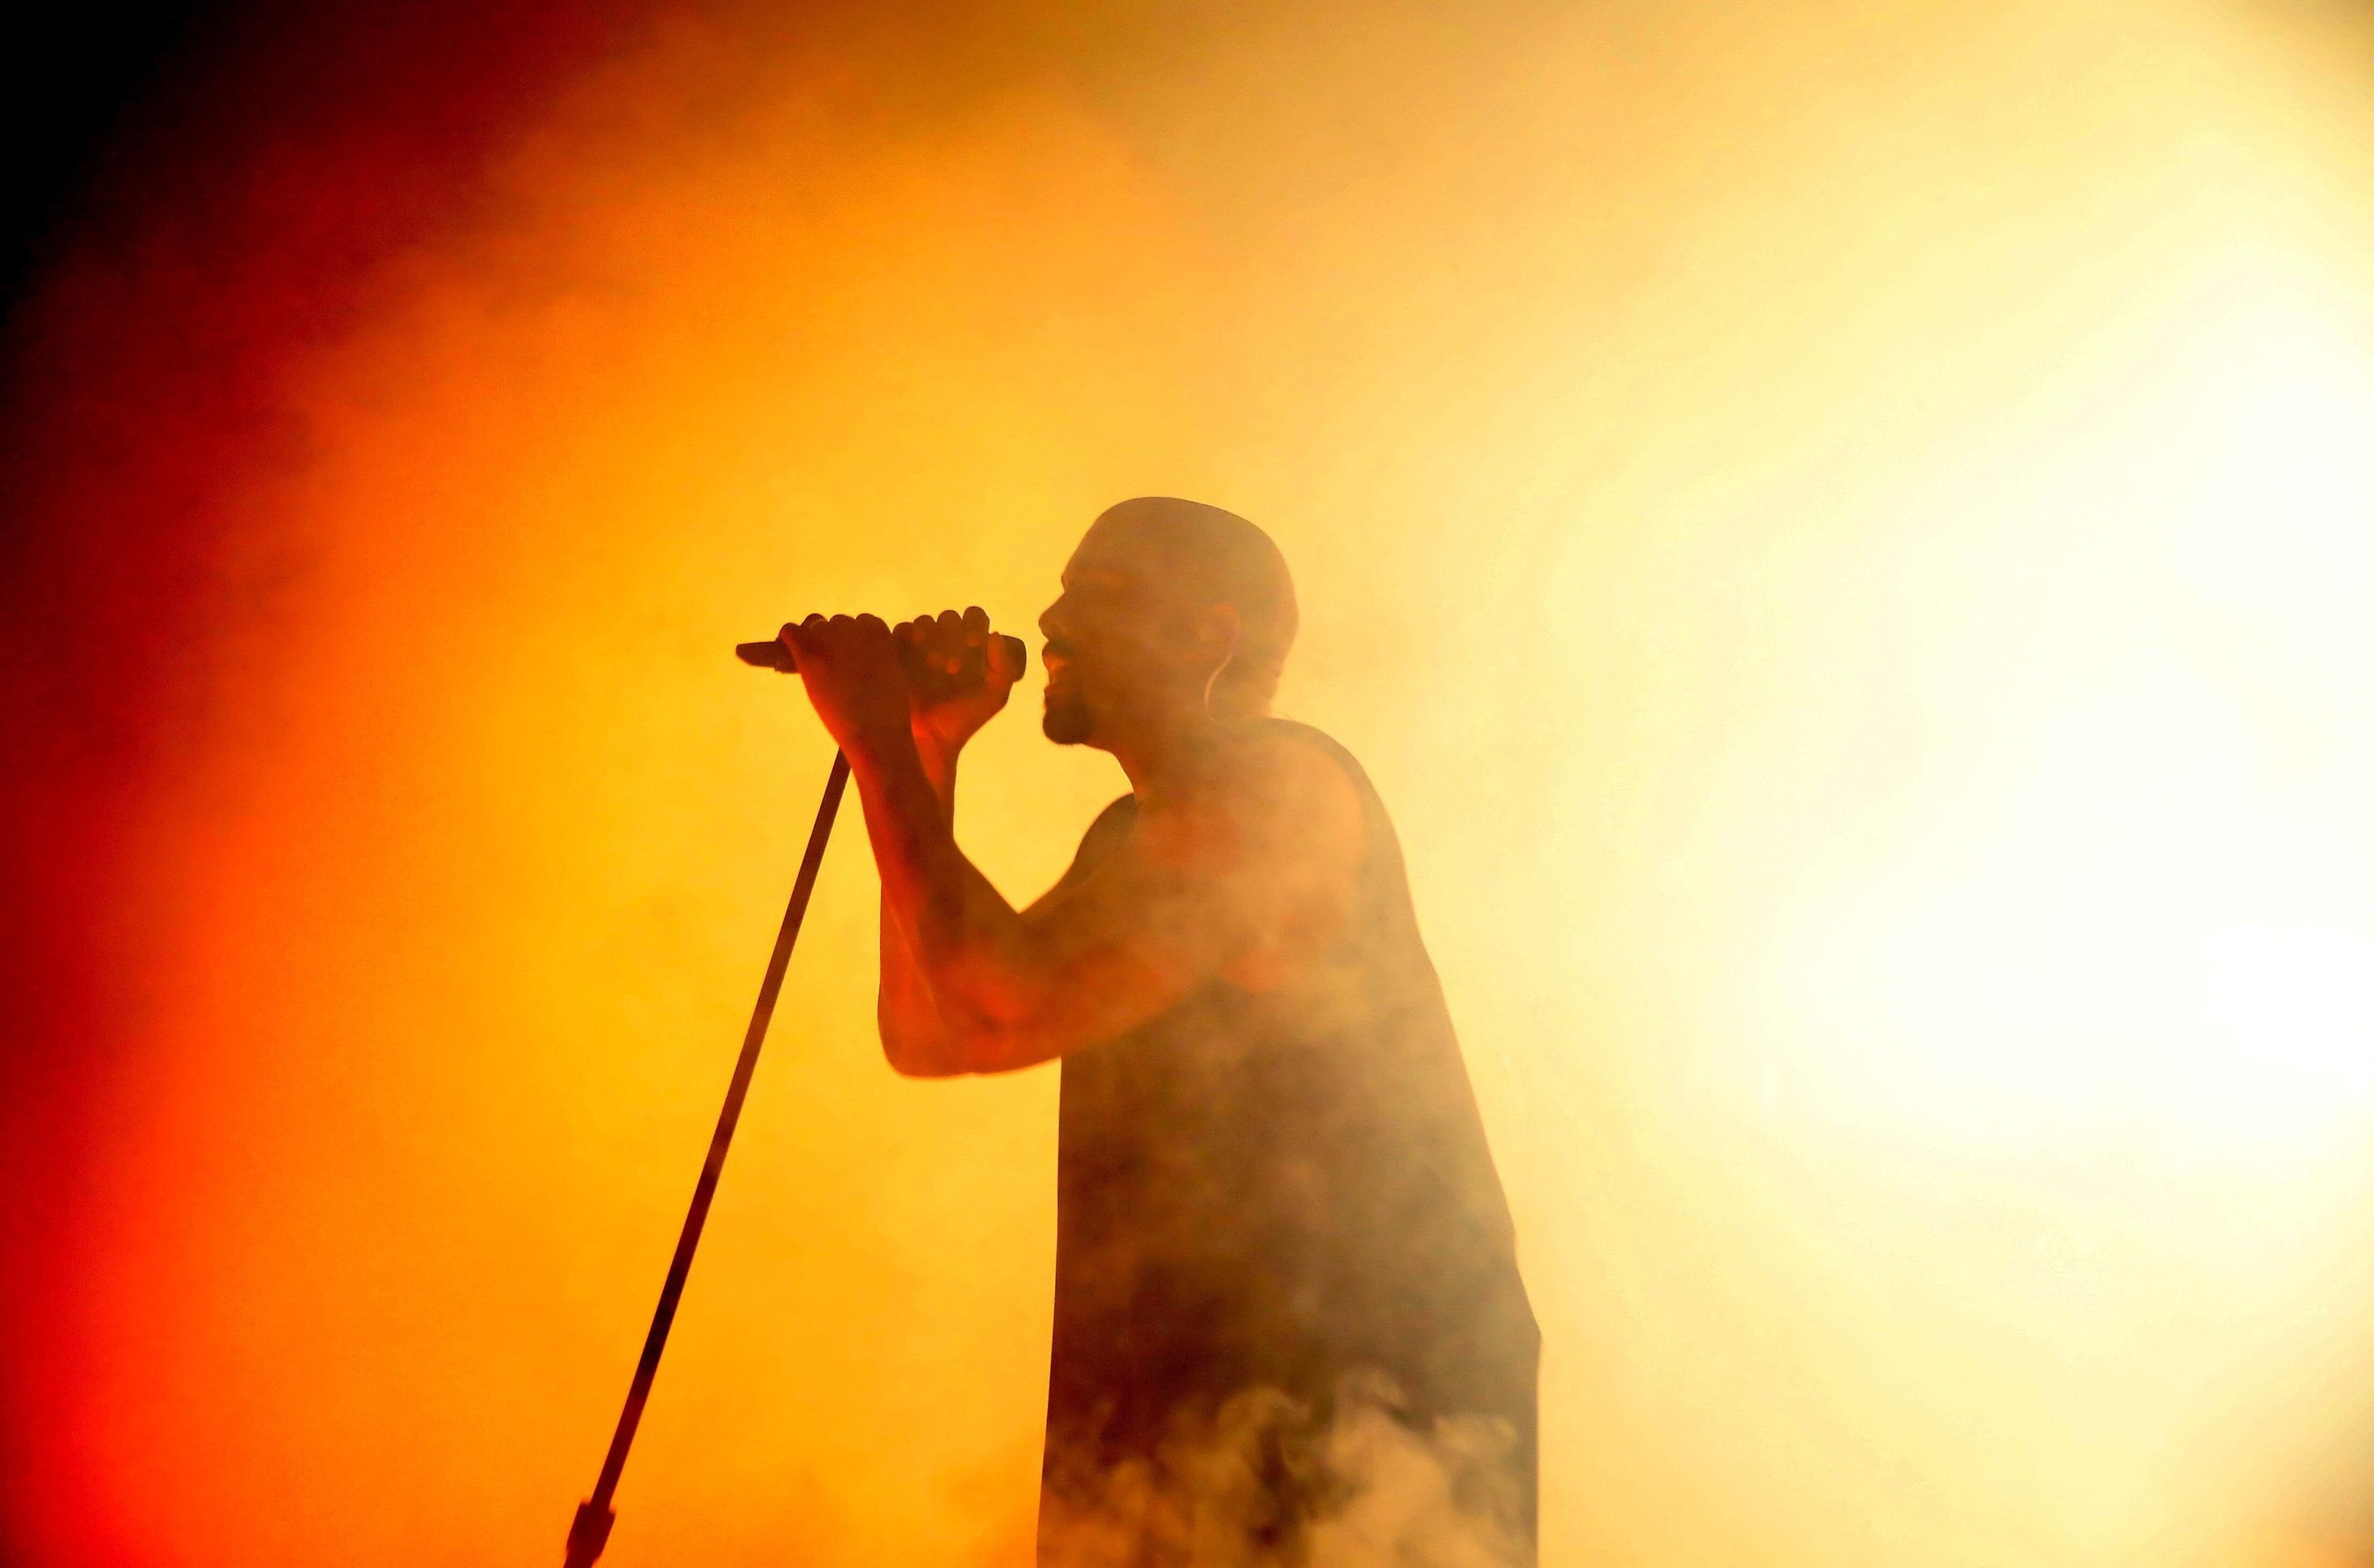 LOS ANGELES, CA - SEPTEMBER 24:  Rapper Kanye West performs onstage during the VIP sneak peek of the go90 Social Entertainment Platform at the Wallis Annenberg Center for the Performing Arts on September 24, 2015 in Los Angeles, California.  (Photo by Jonathan Leibson/Getty Images  for go90)